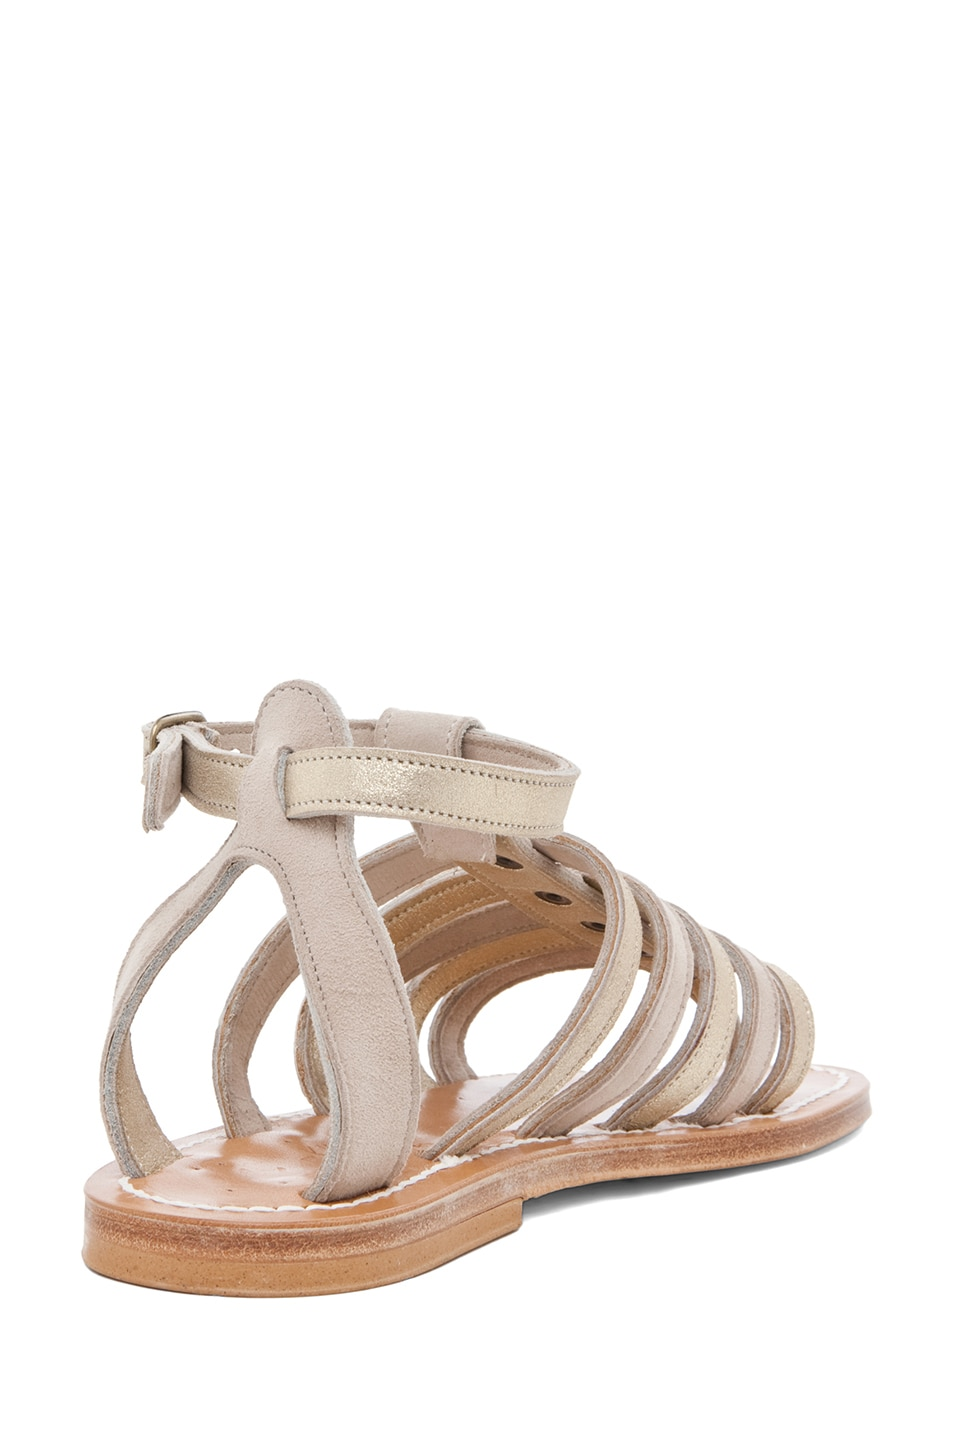 Image 3 of K Jacques Agopos Suede Interbi Gladiator Sandals in Nude & Gold